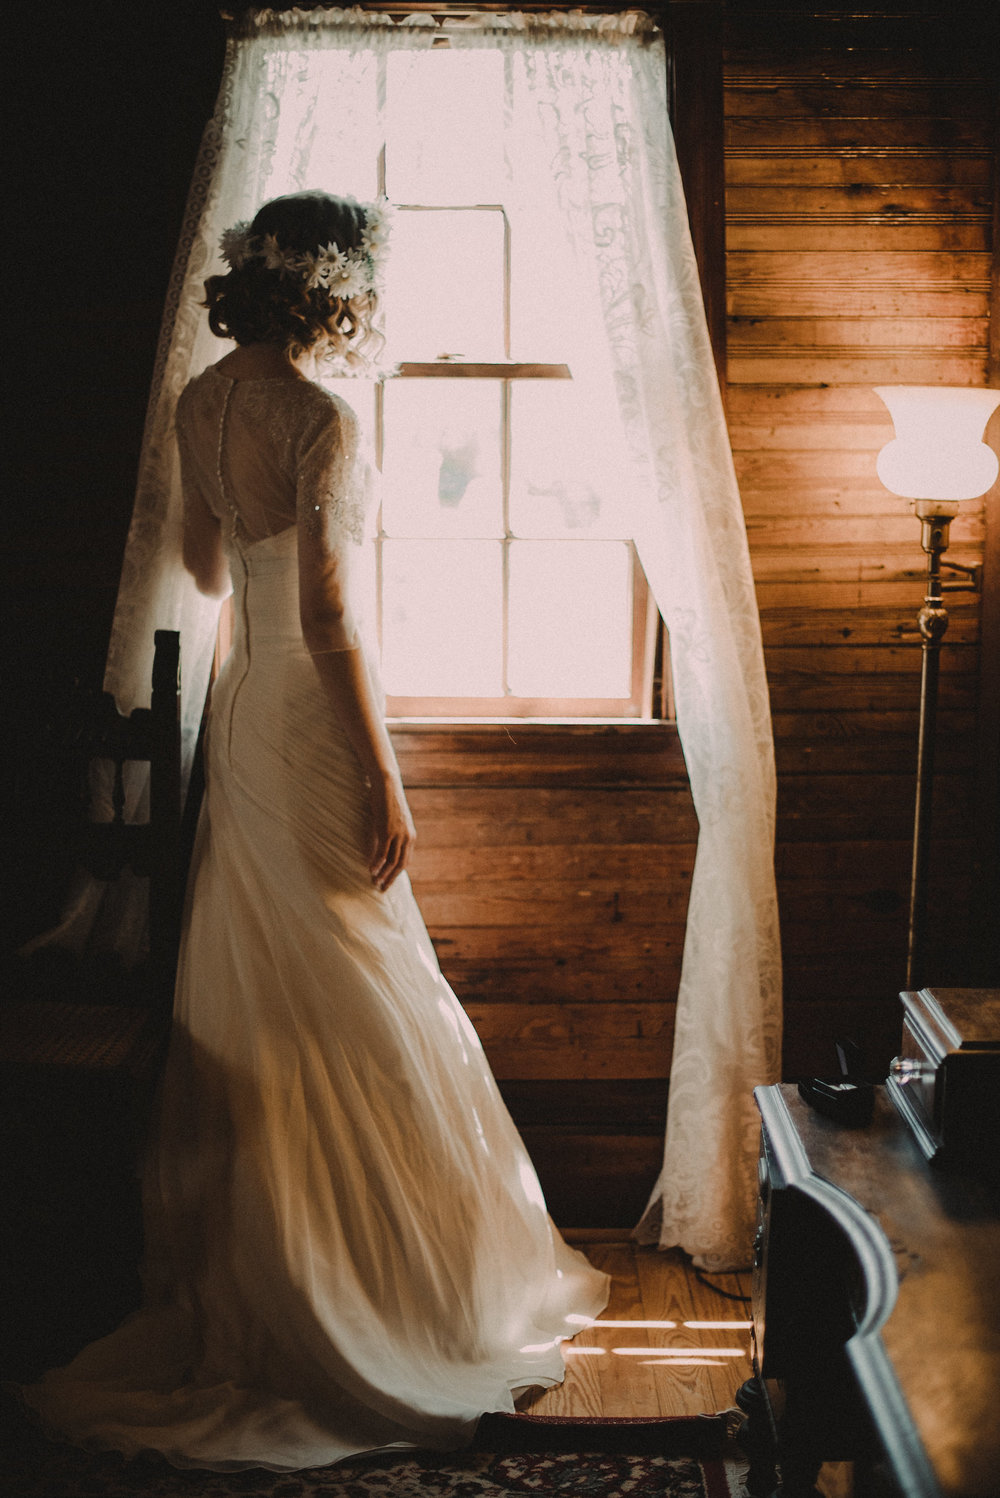 Bride looking out window before wedding